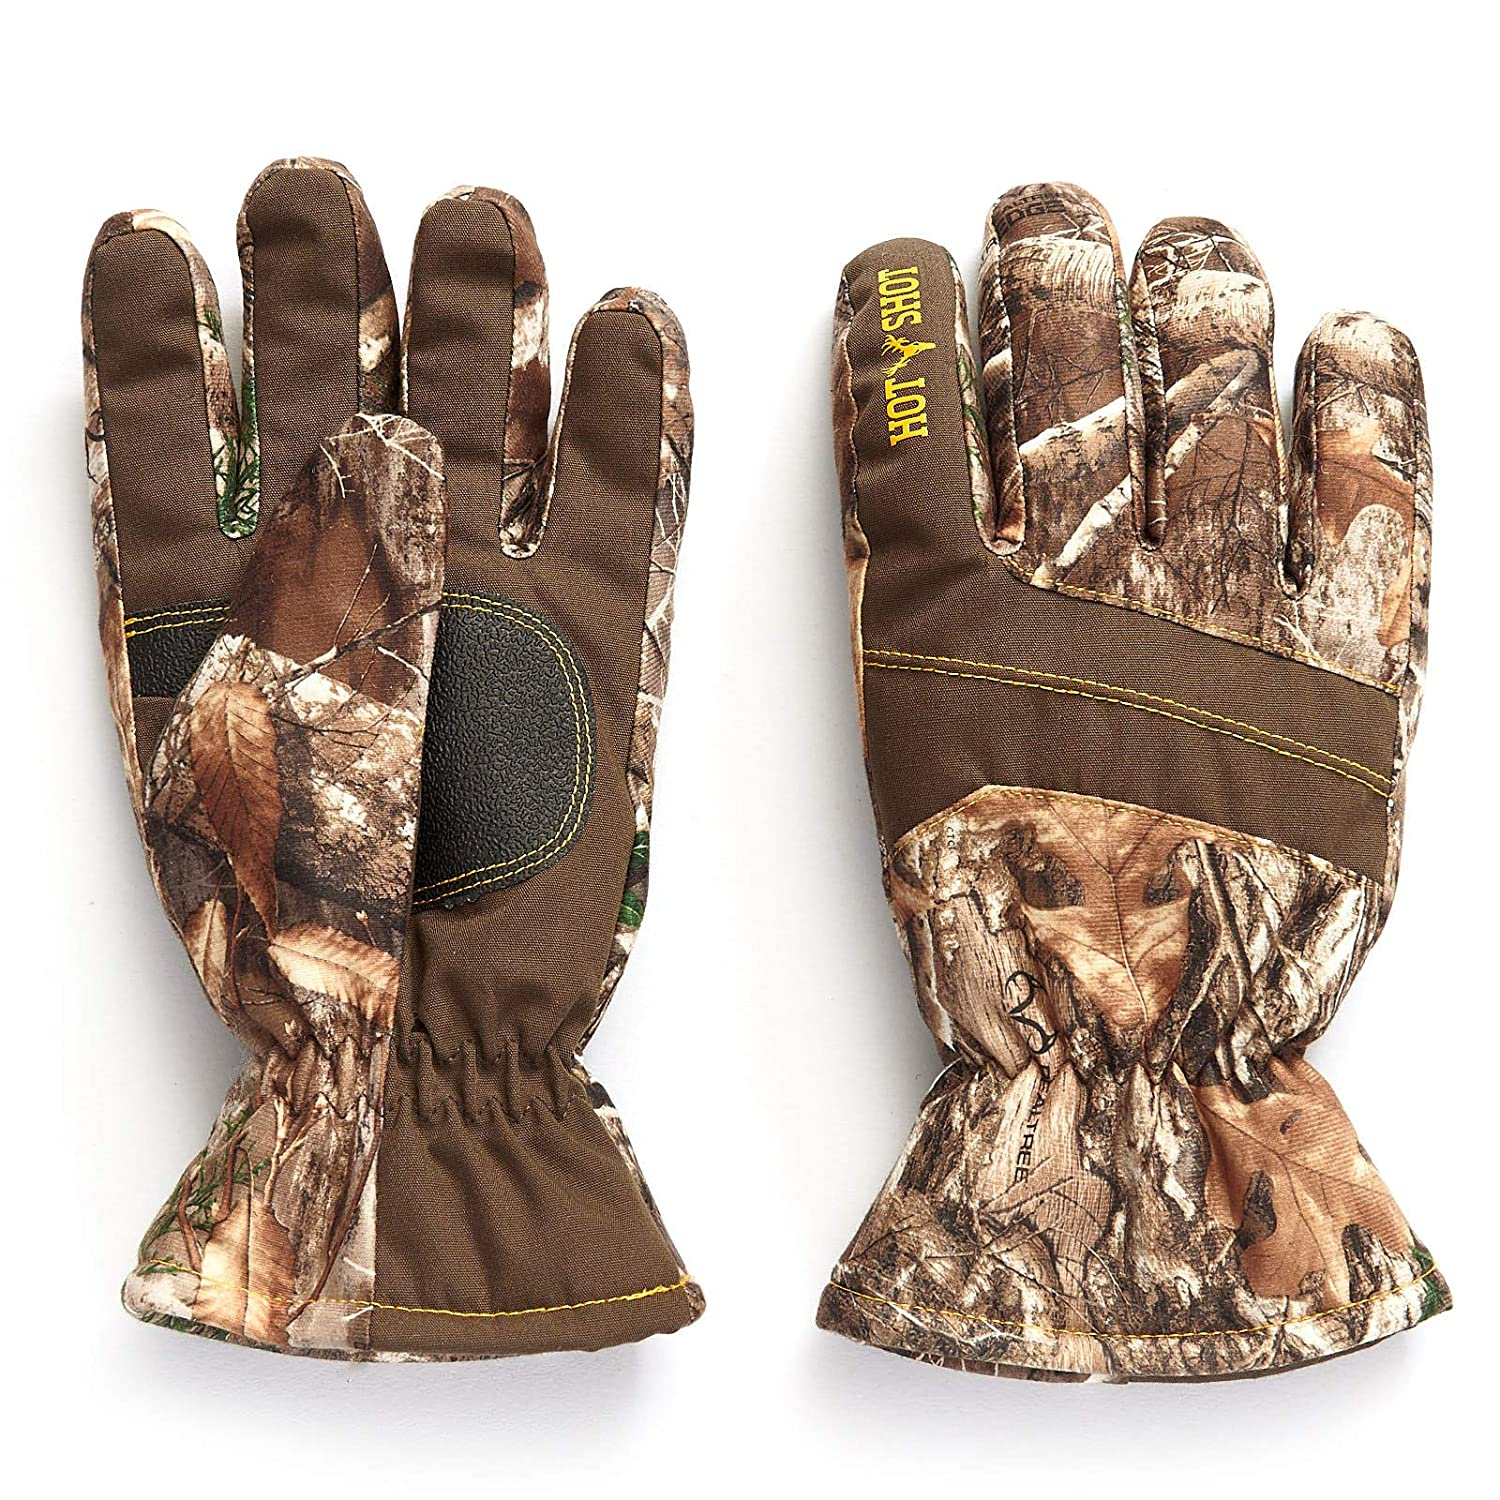 Hot Shot Youth Defender Glove Jacob Ash Holdings Inc.